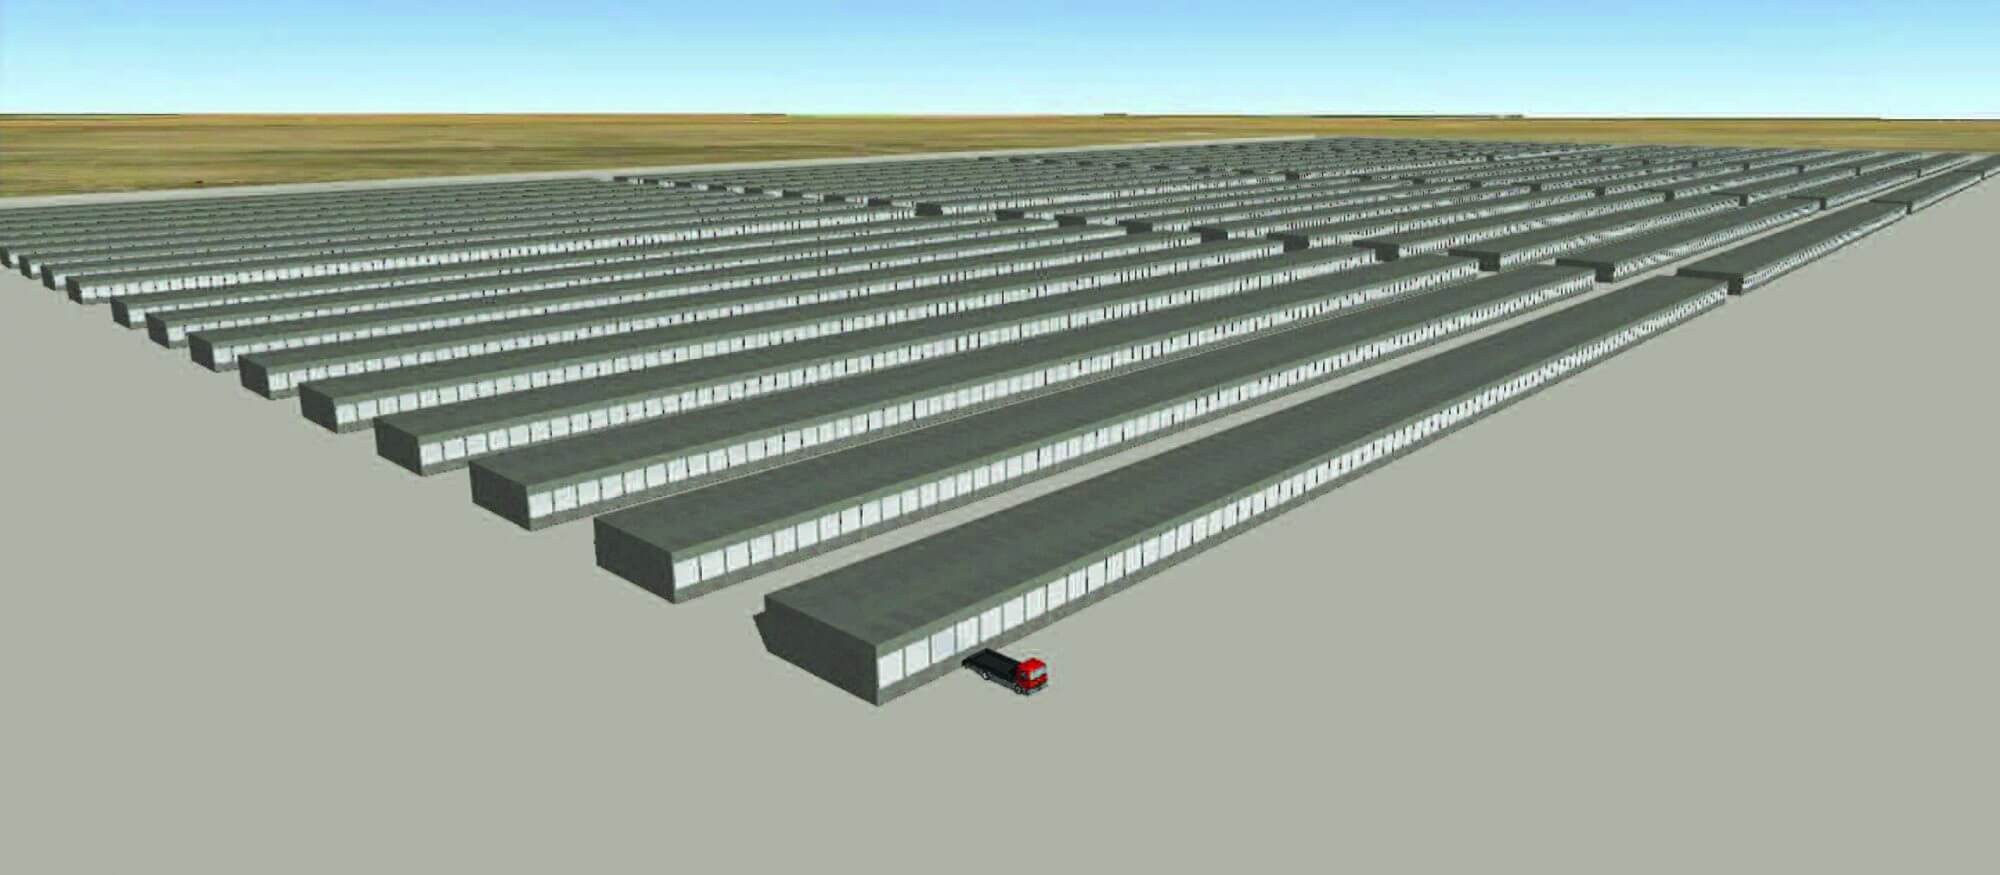 Texas firm seeks approval to store used nuclear fuel